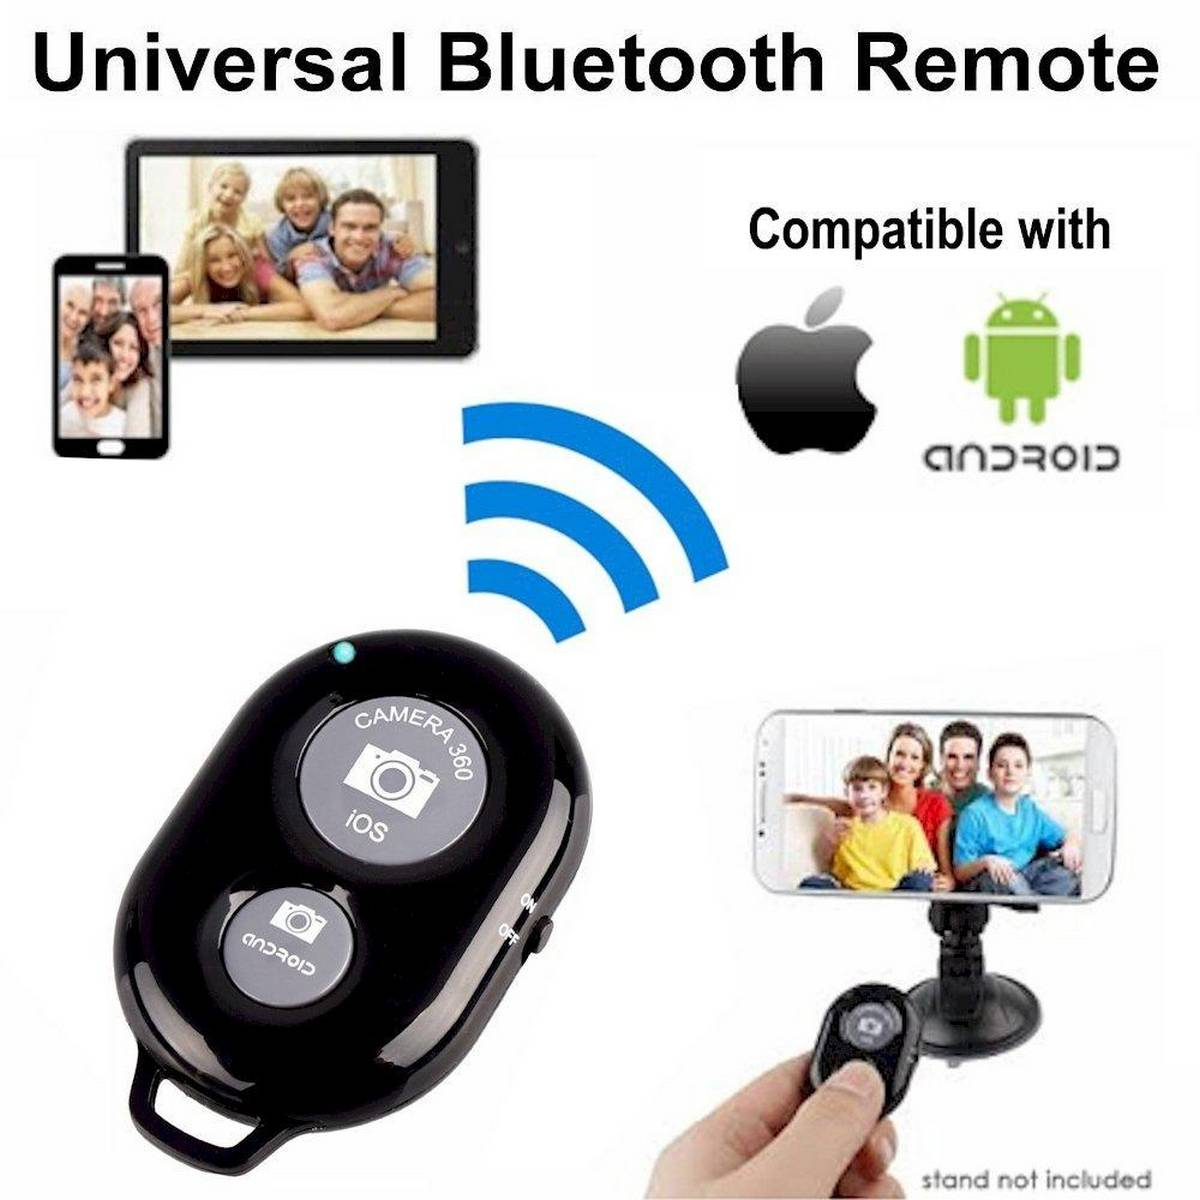 Wireless Bluetooth Remote Shutter Button For Selfie Stick Monopod Tripod Compatible With iOS And Android Devices Smartphones